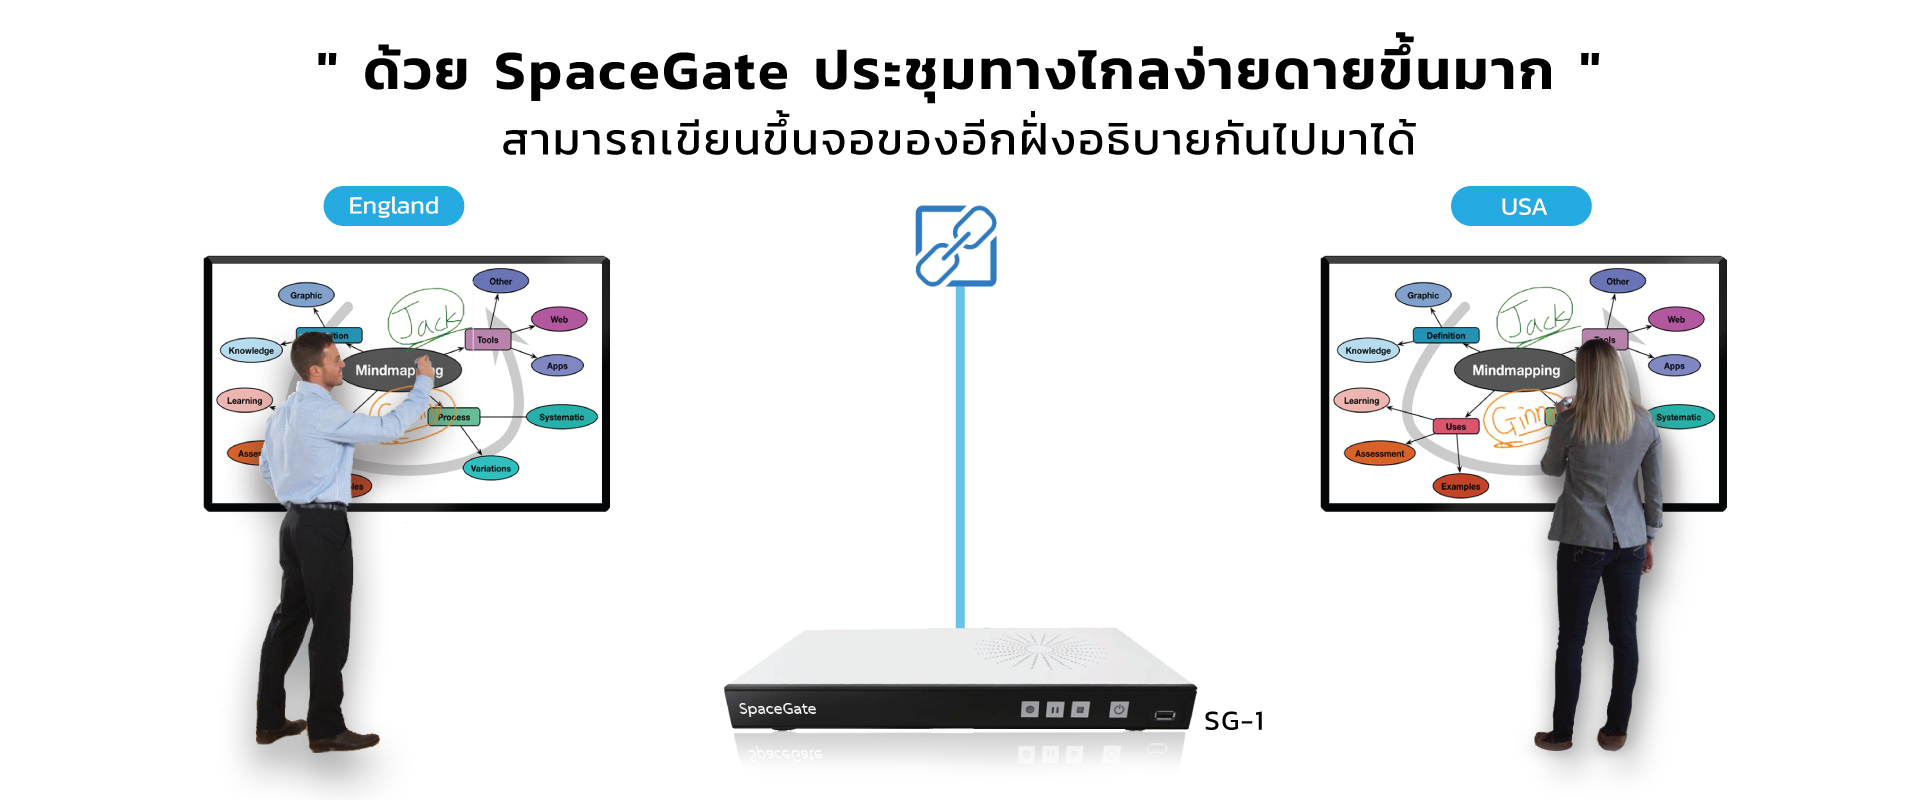 SG-1 media collaboration system